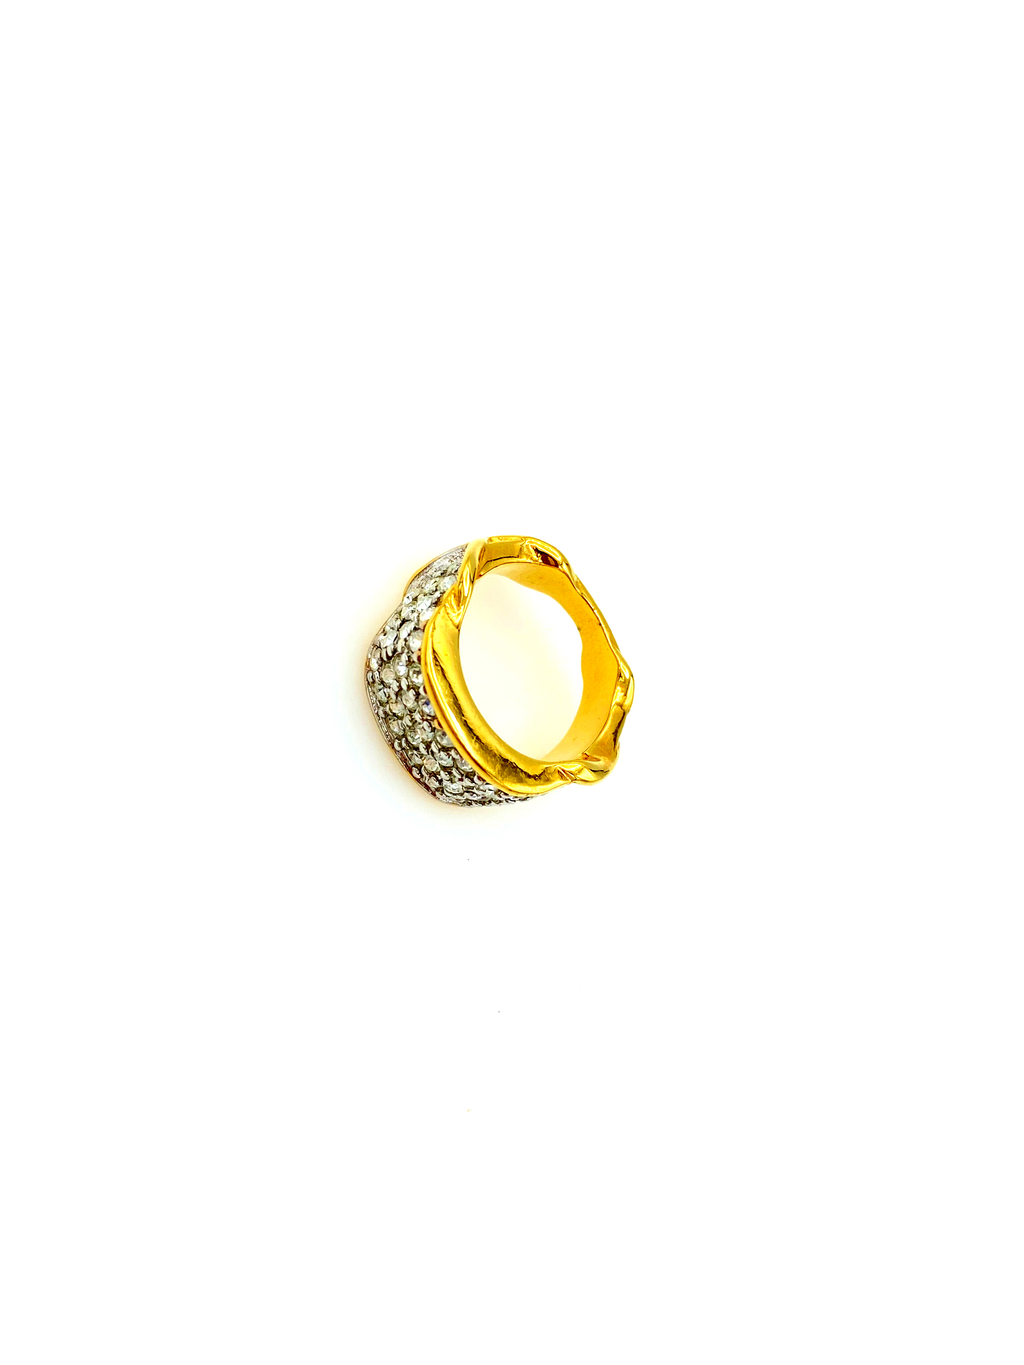 Elizabeth Taylor Brilliance Gold Pave Vintage Ring-Sustainable Fashion with Vintage Style-Trending Designer Fashion-24 Wishes